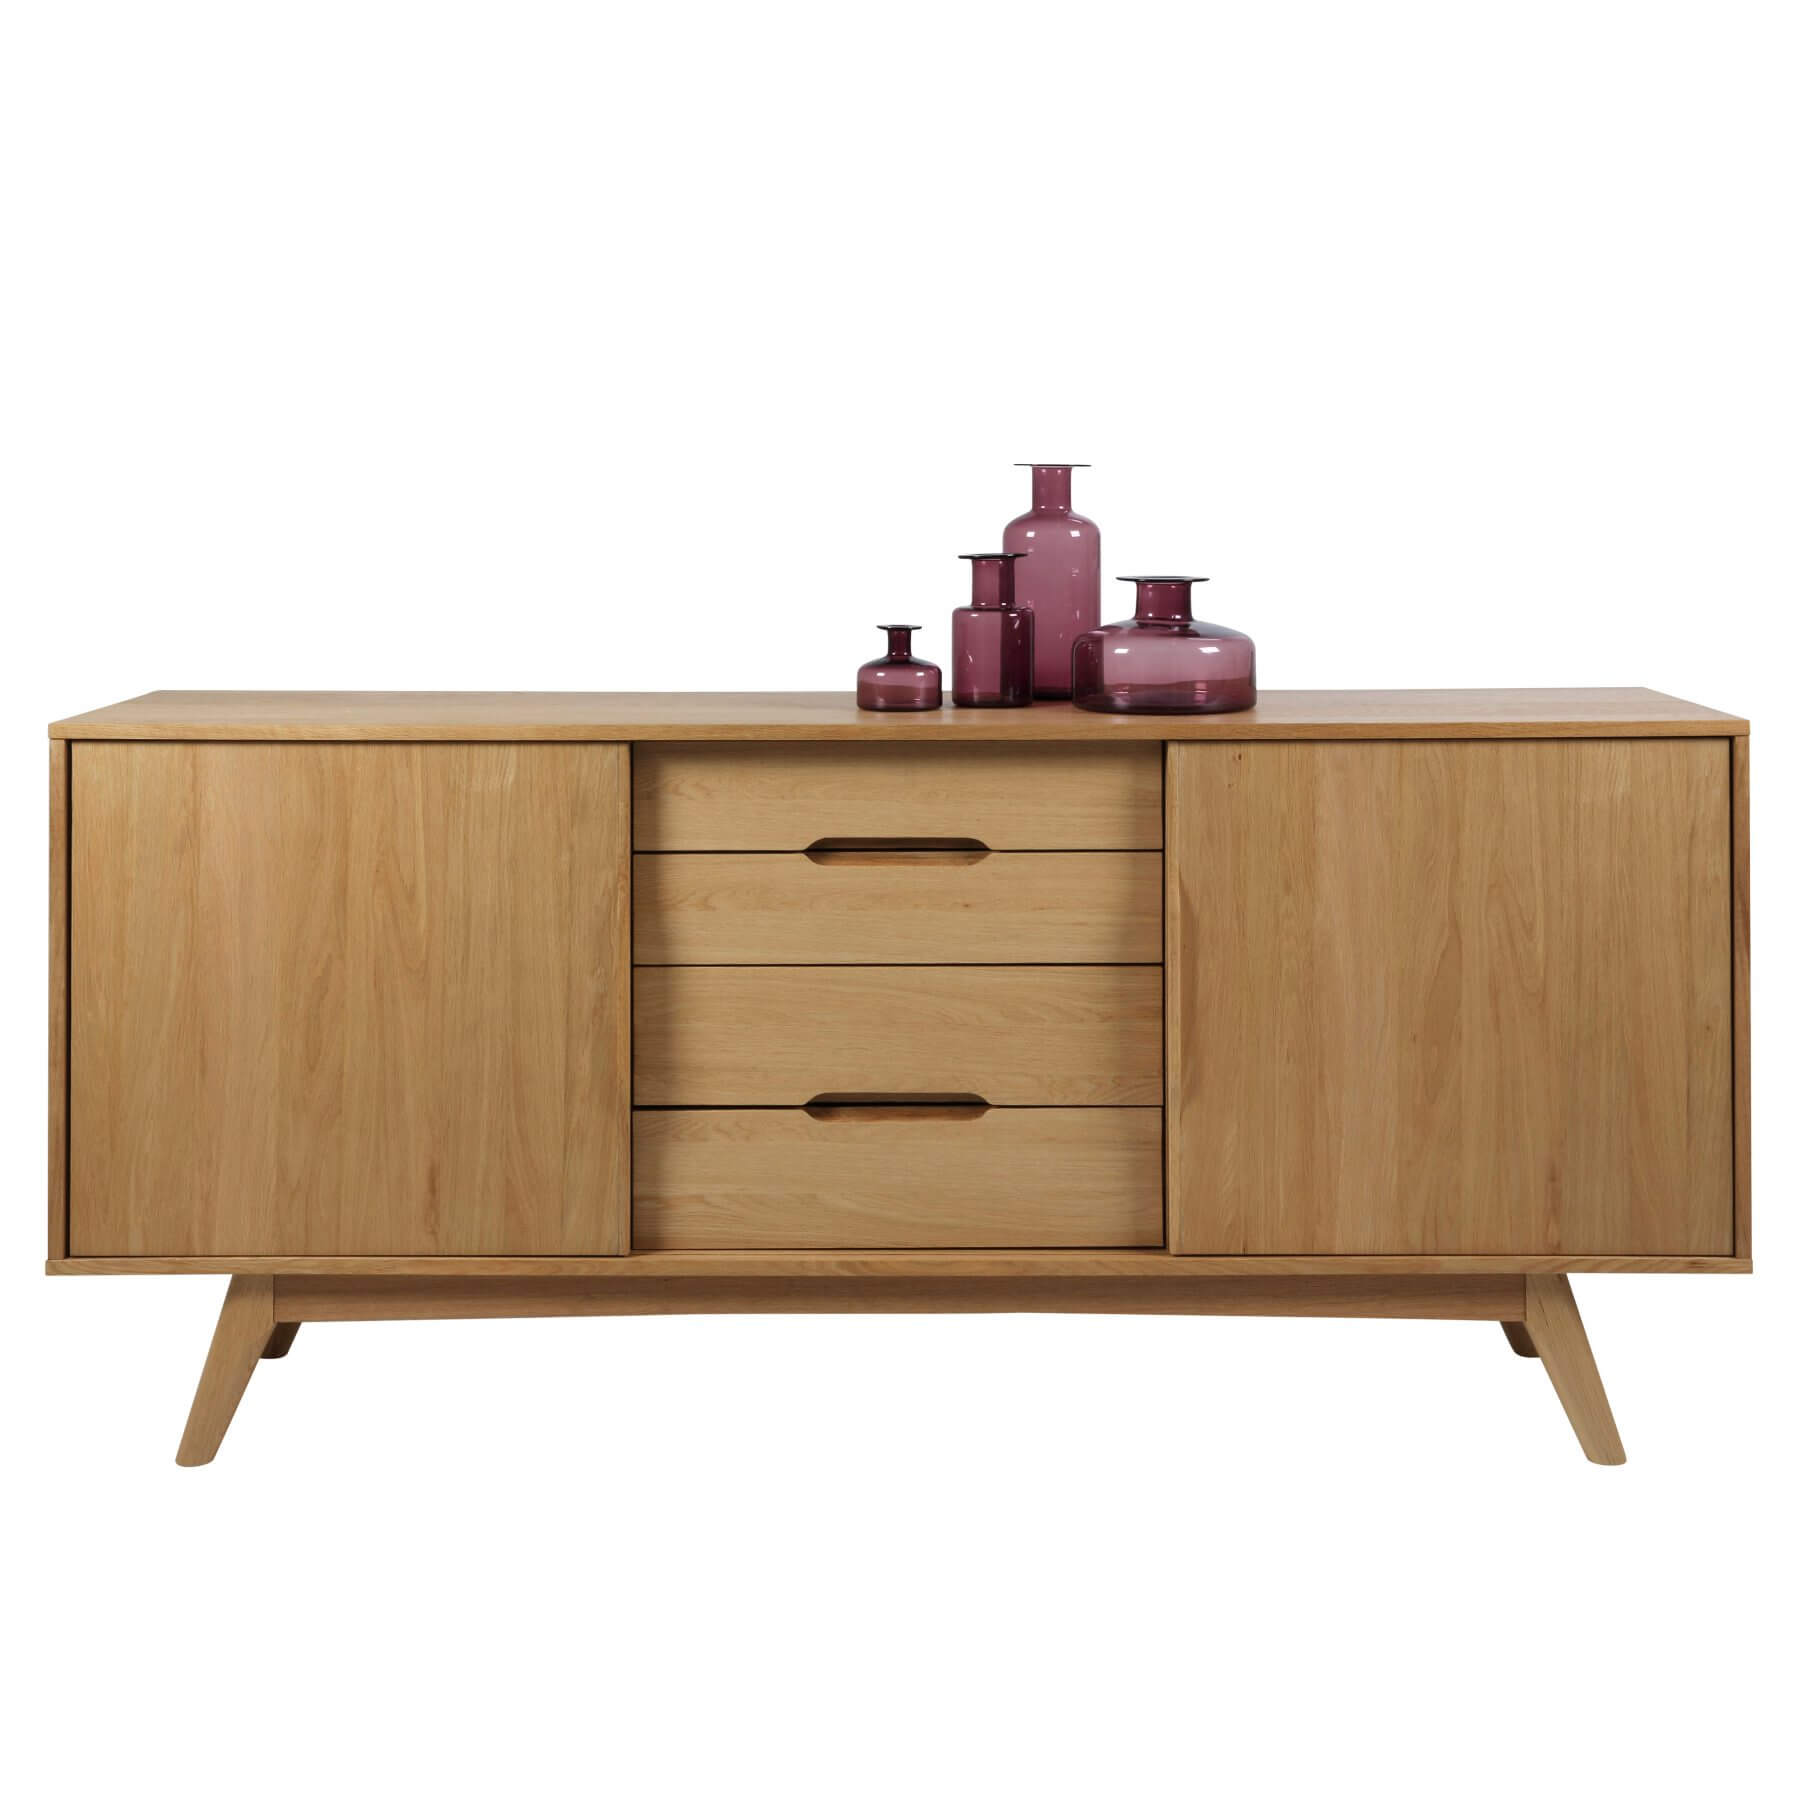 Marte Oak Sideboard Storage